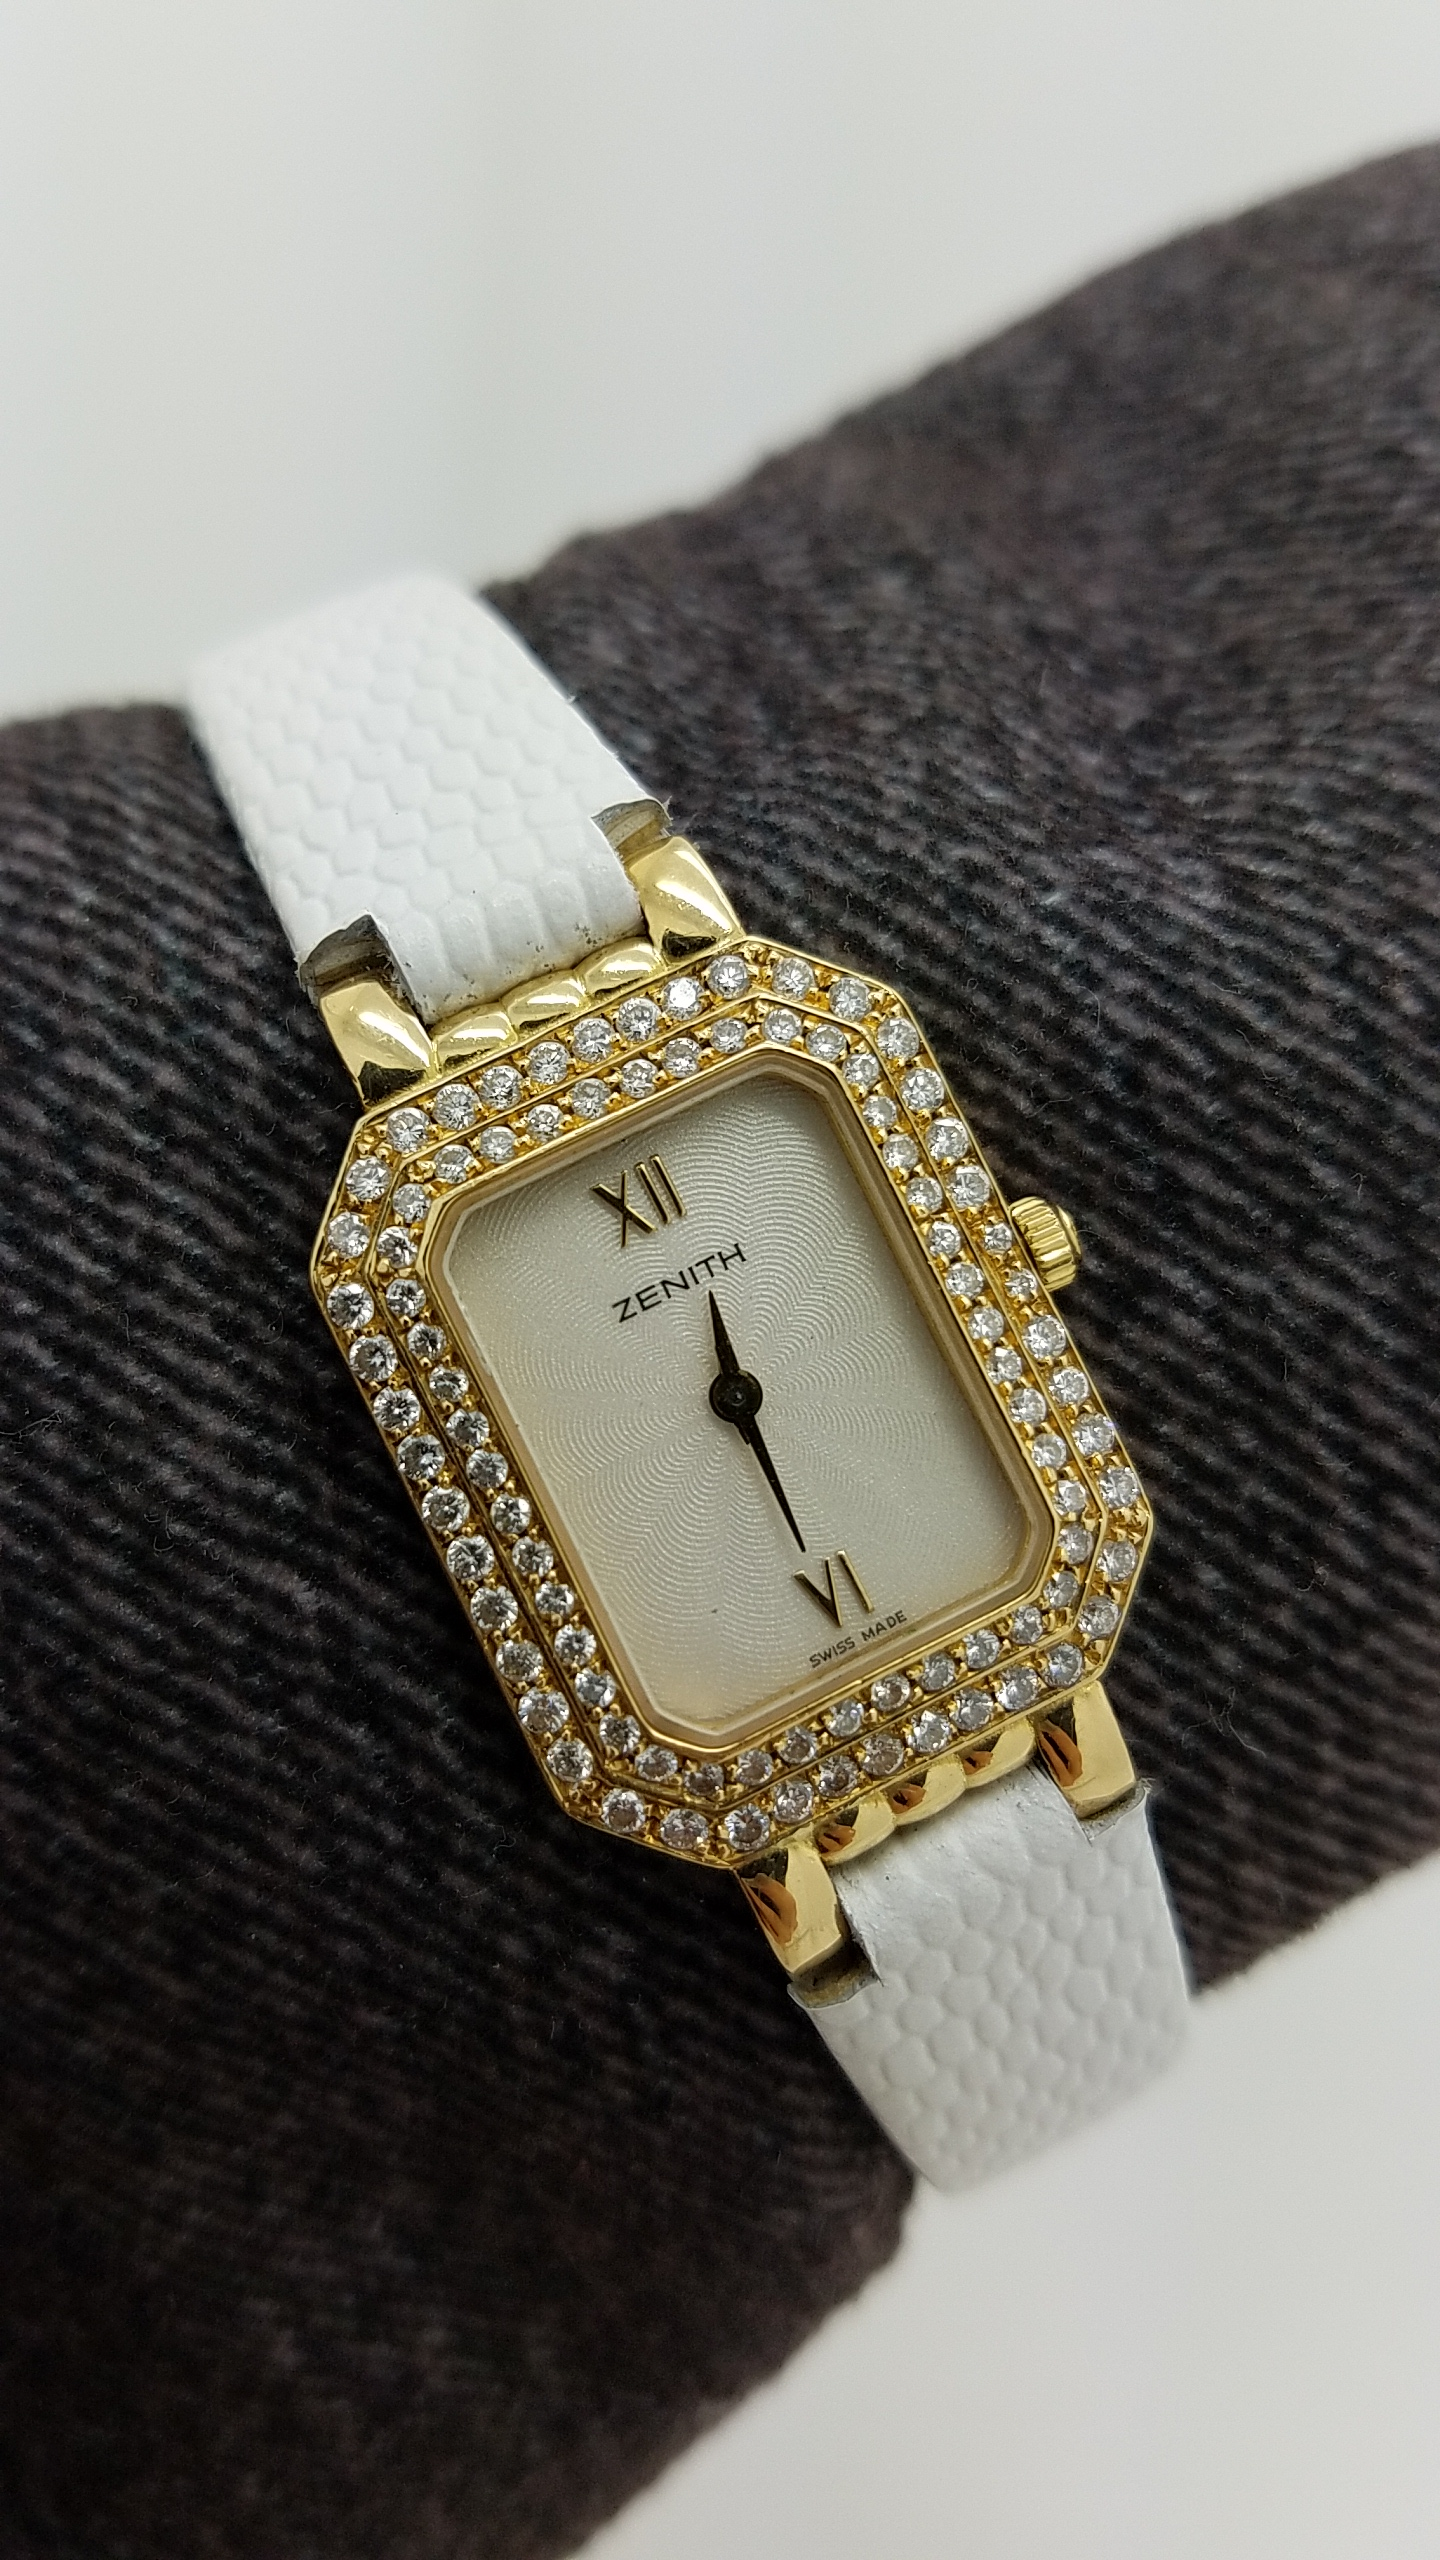 ZENITH	LADIES 18K 		WHITE	Solid Gold	Genuine Leather	20MM	DIAMOND		Quartz (Battery)	Watch